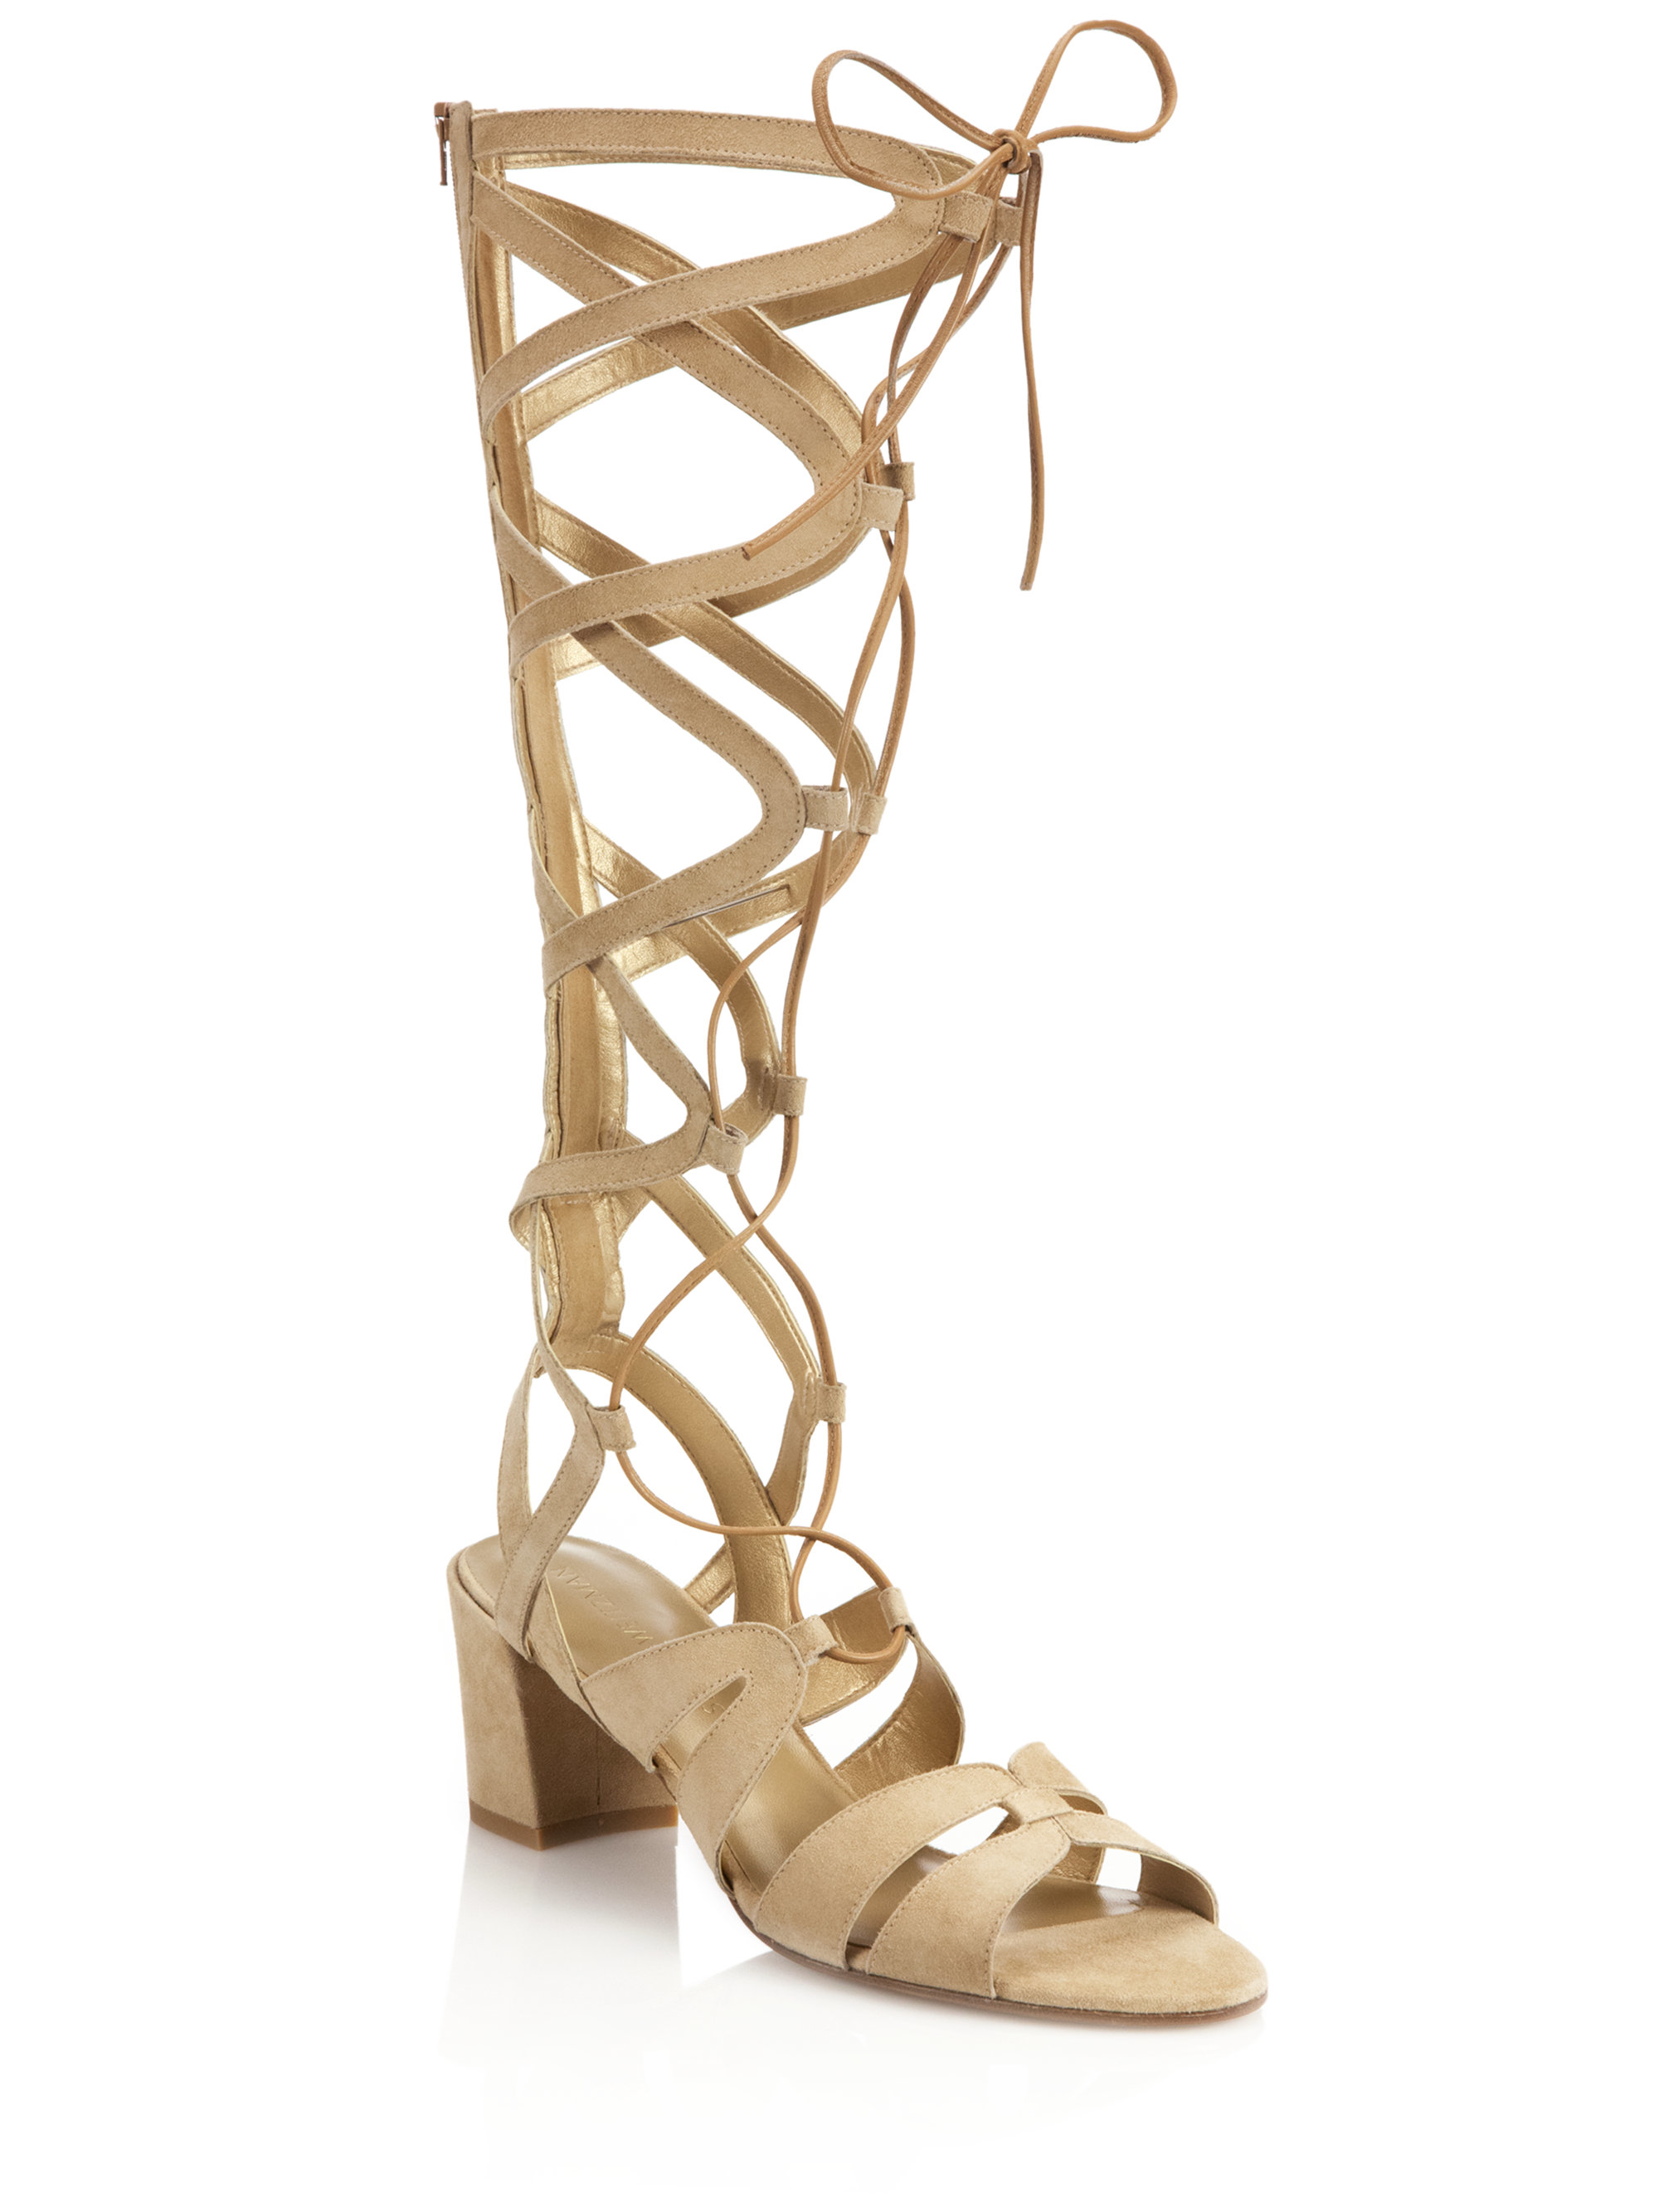 115639c5e Gallery. Previously sold at: Saks Fifth Avenue · Women's Gladiator Sandals